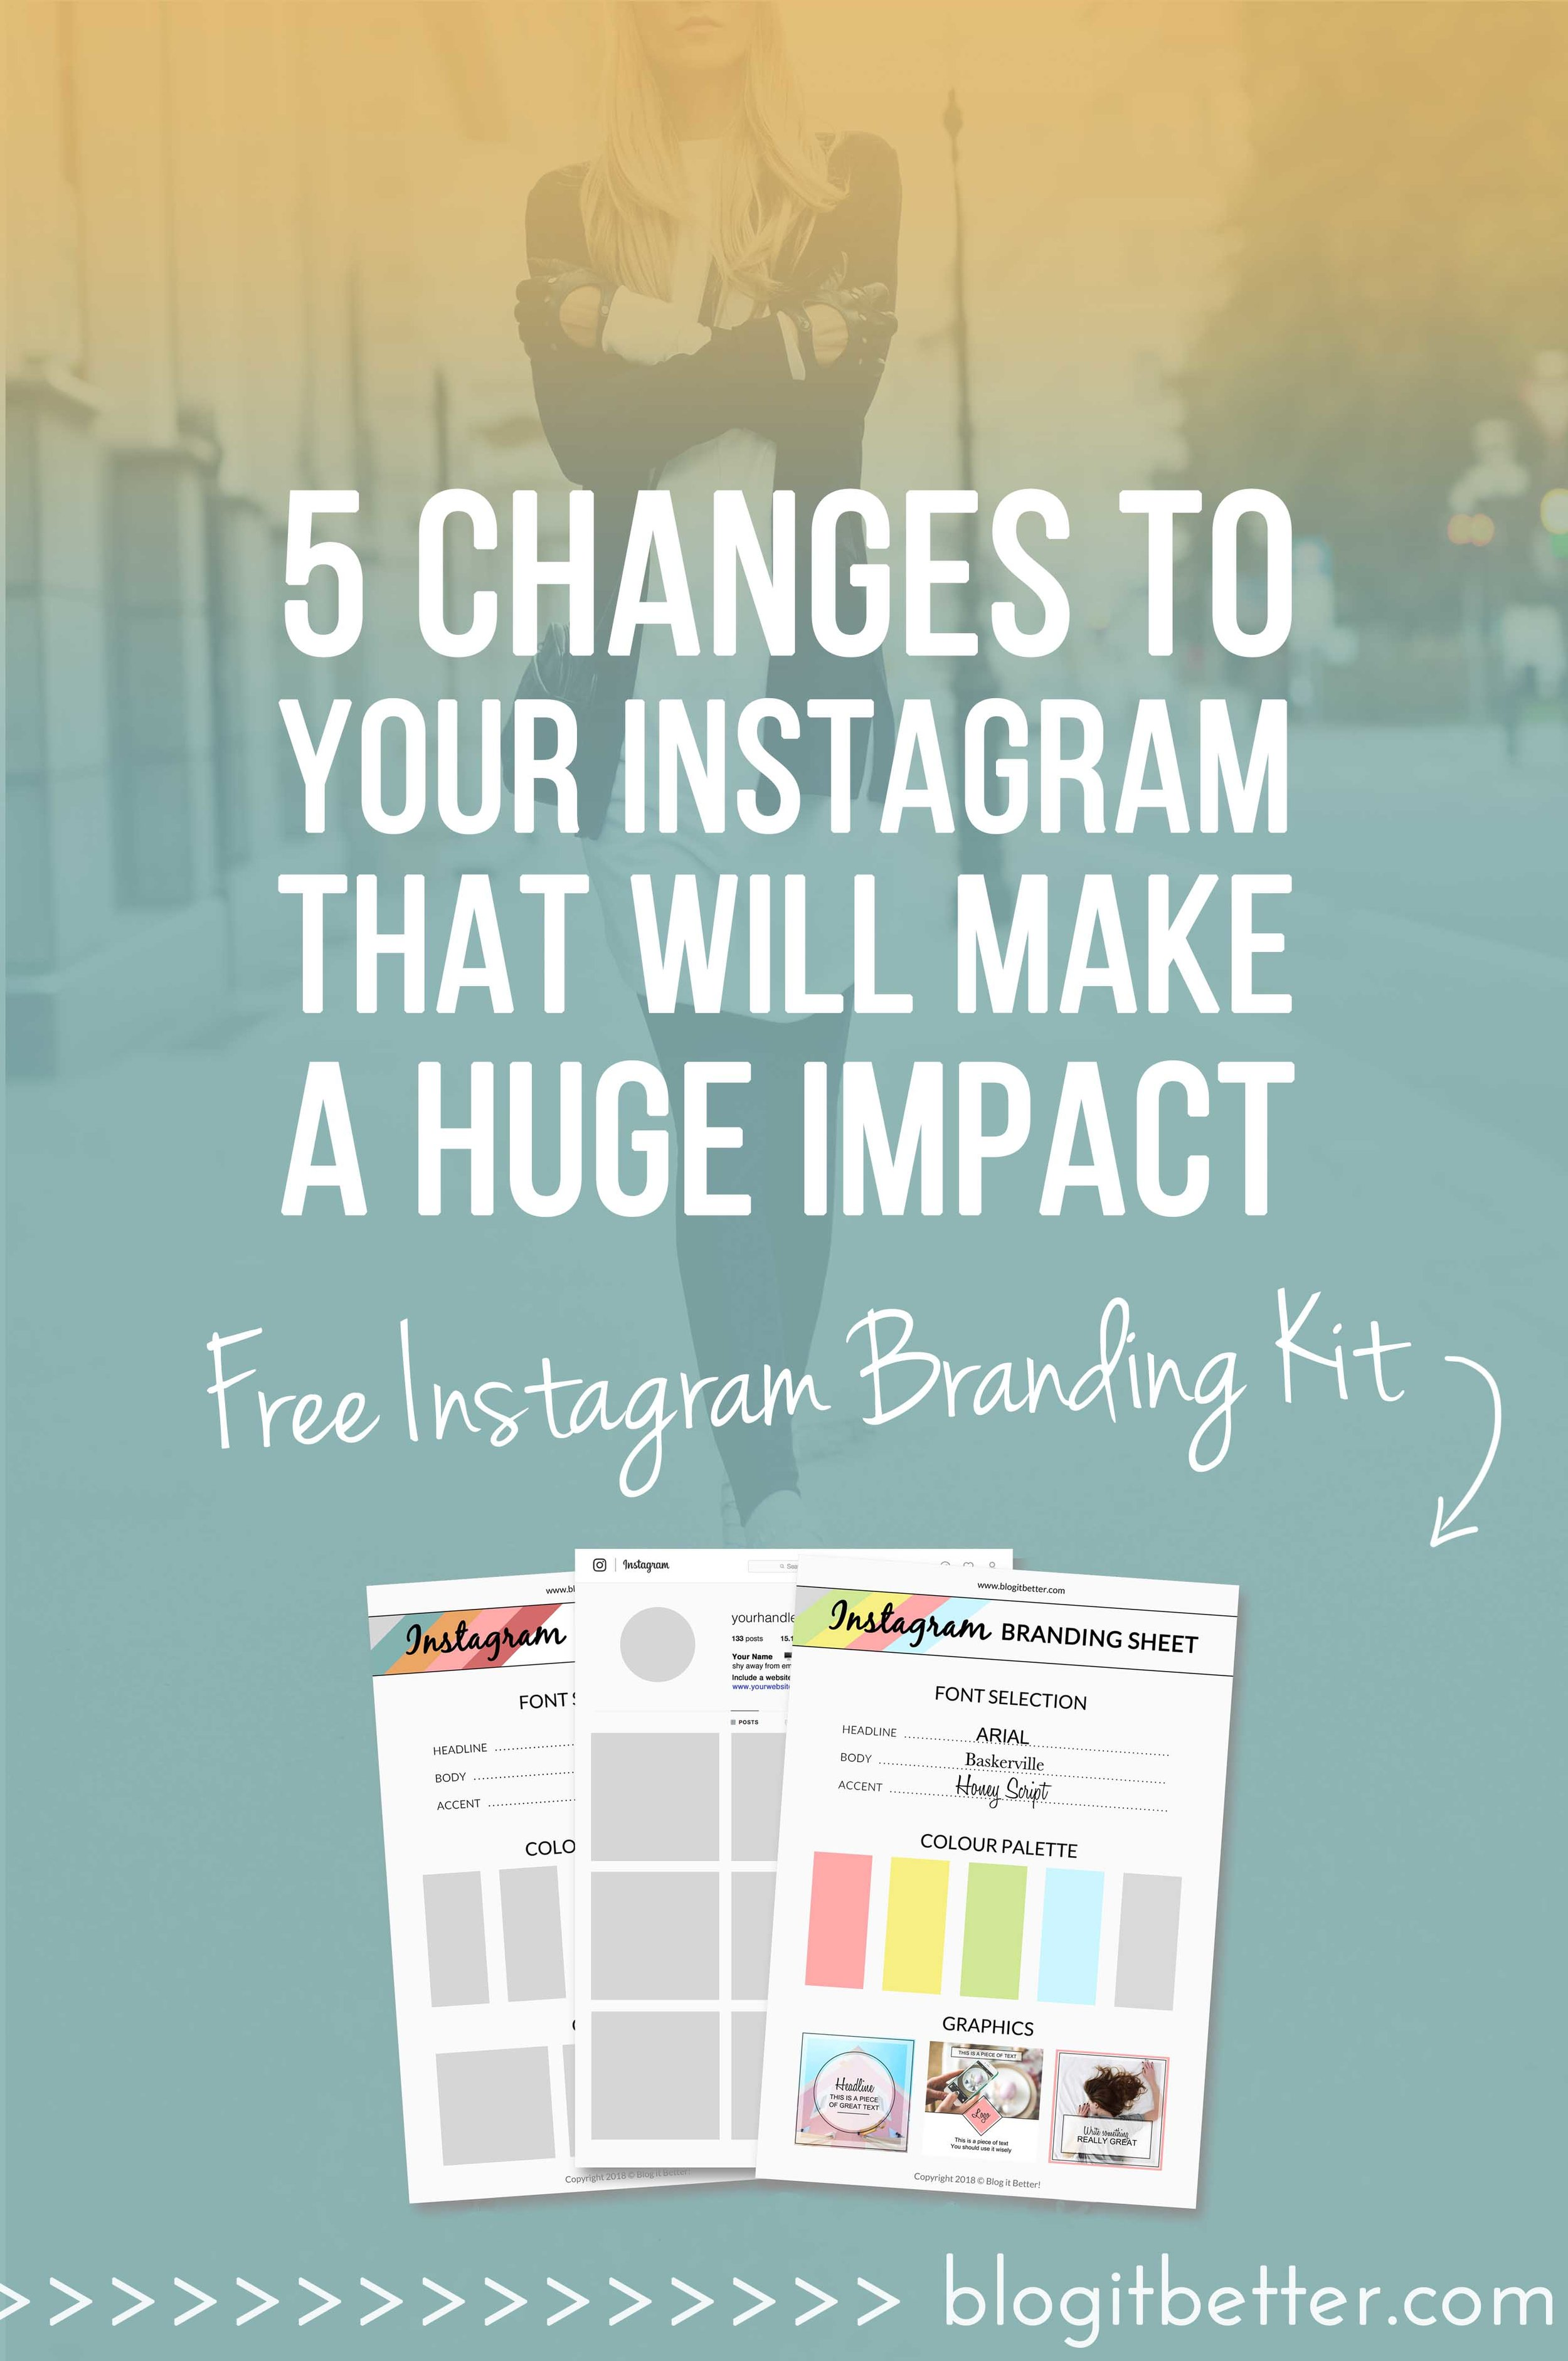 >>FREE Instagram Branding Kit<< Drastically Improve Your Instagram Engagement With These 5 Instagram Changes! Blog it Better! #instagram #socialmedia #instagramengagement #blogger #bloggingtips #socialmediatips #socialmediamarketing #instagramtips #howtouseinstagram #instagramforbusiness #instagramtraffic #blogitbetter #blogcoaching